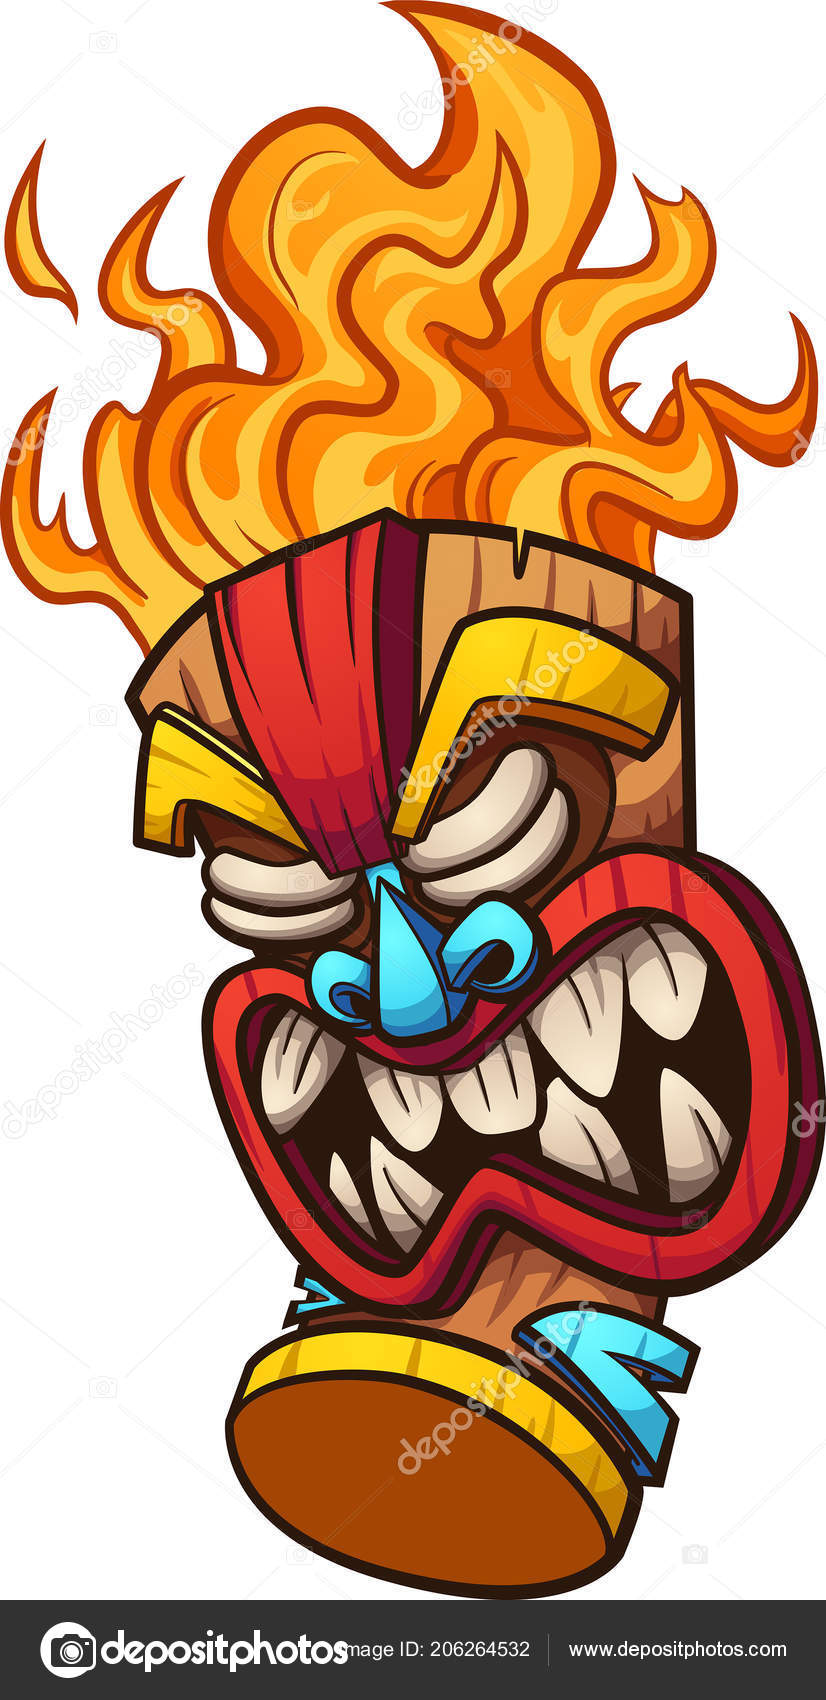 Pmages: hair on fire clip art.